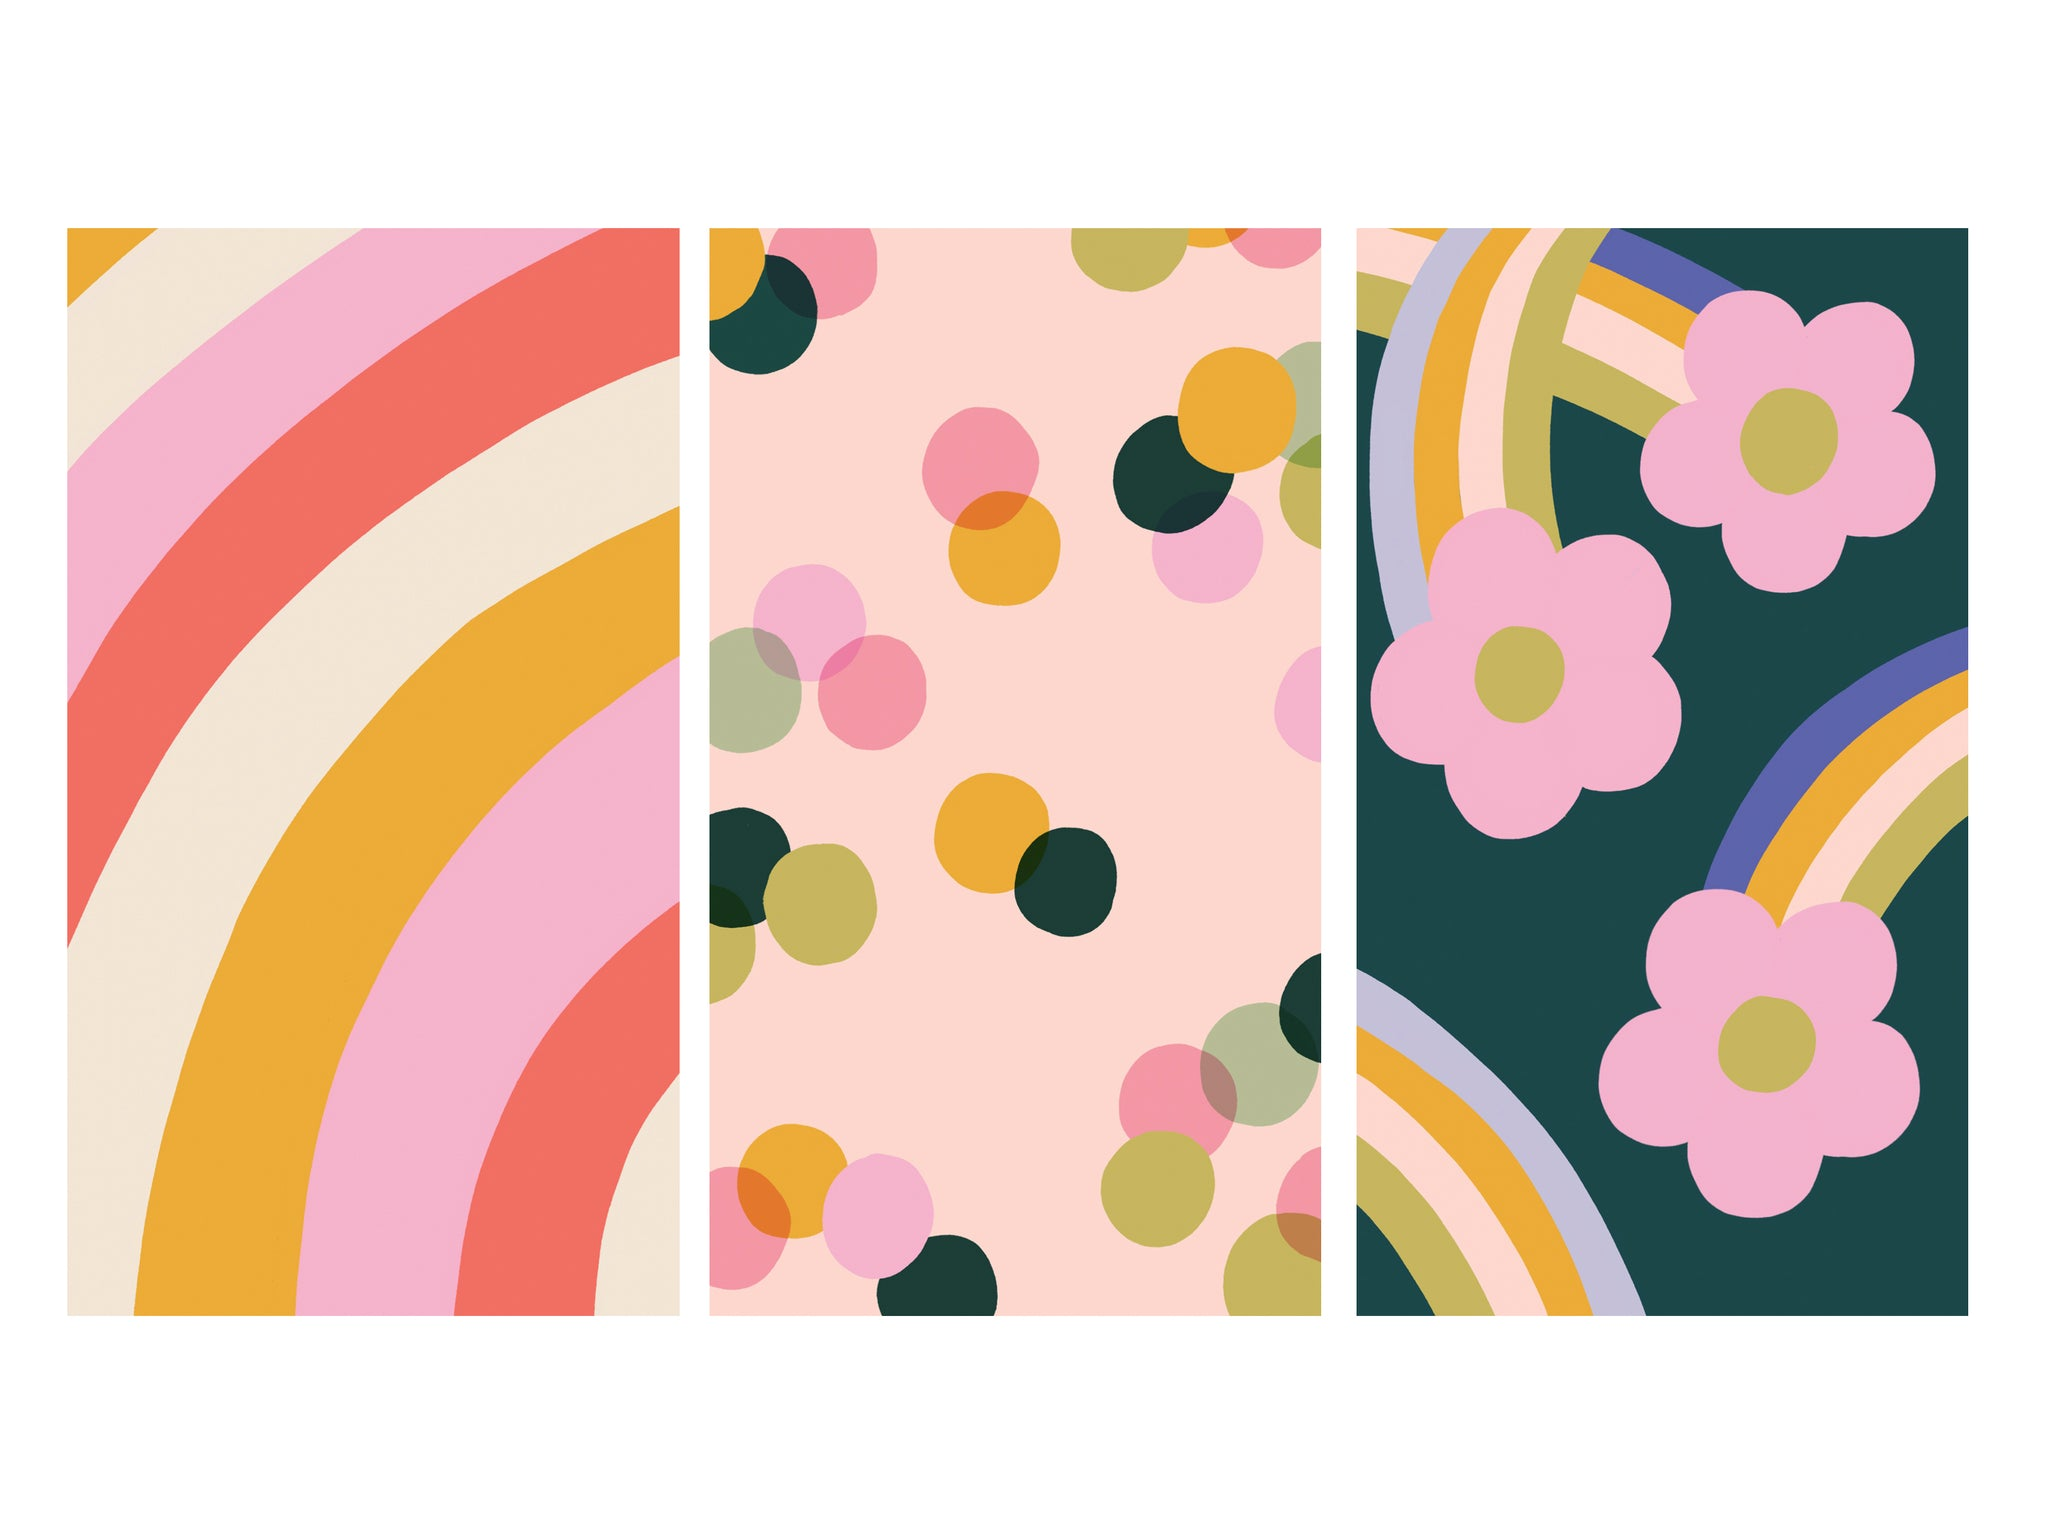 Three colourful free HD phone wallpaper downloads - rainblow pattern, dotty pattern and flower power rainbow and daisies | Raspberry Blossom